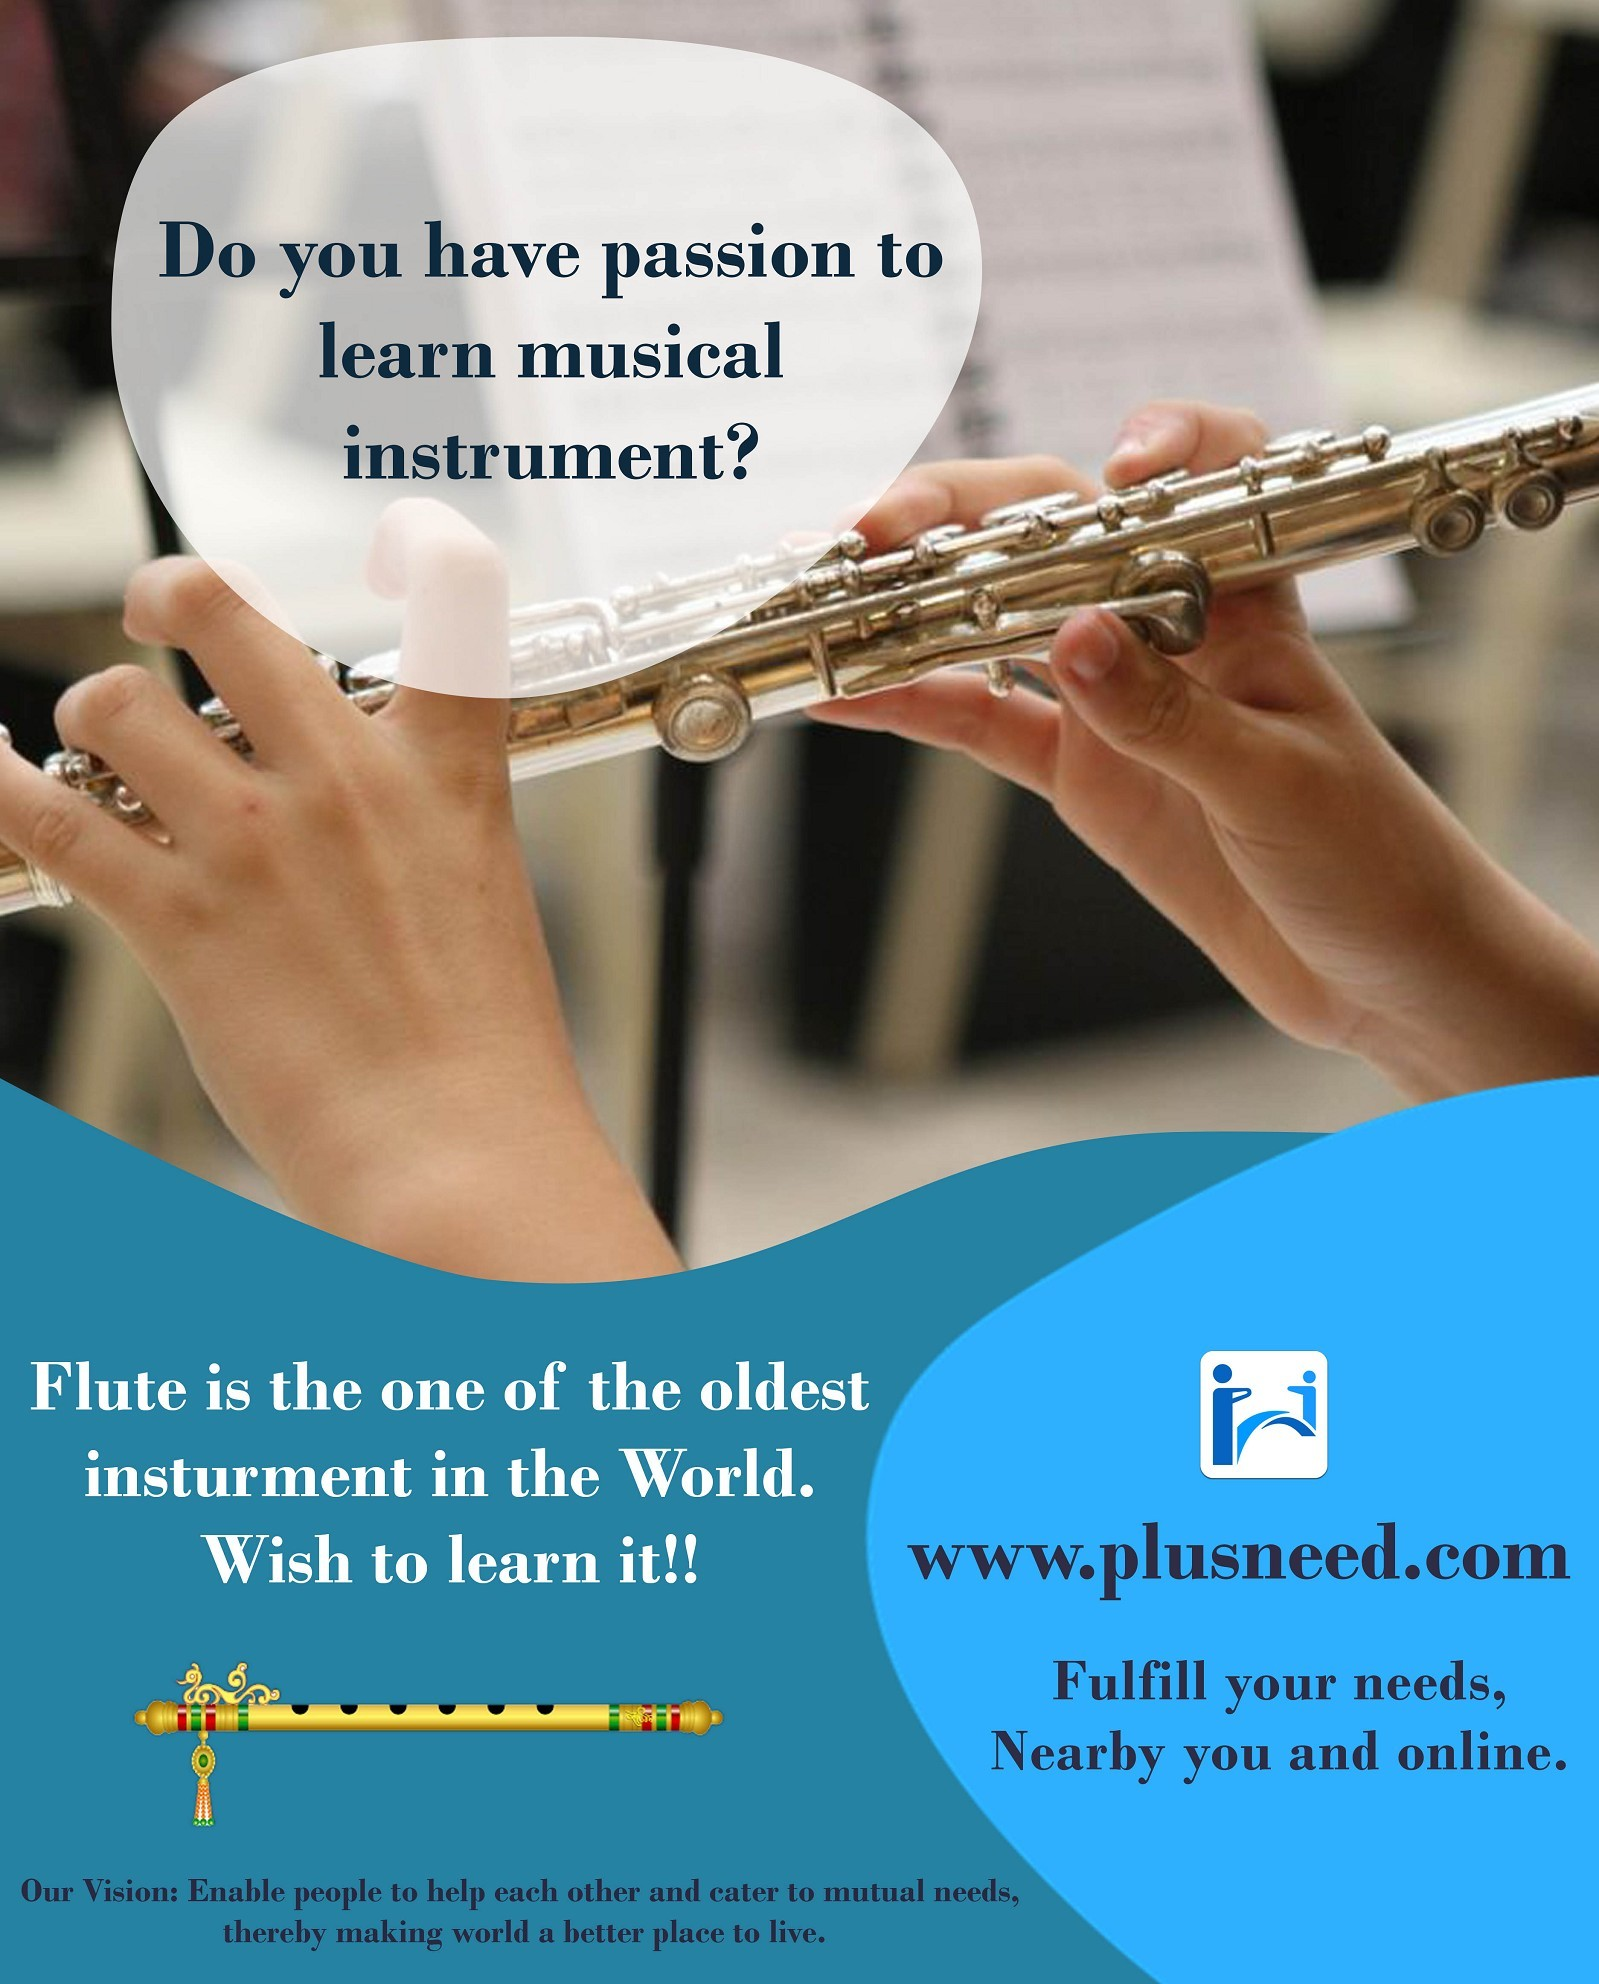 Learn to play Flute from the experts on PlusNeed.